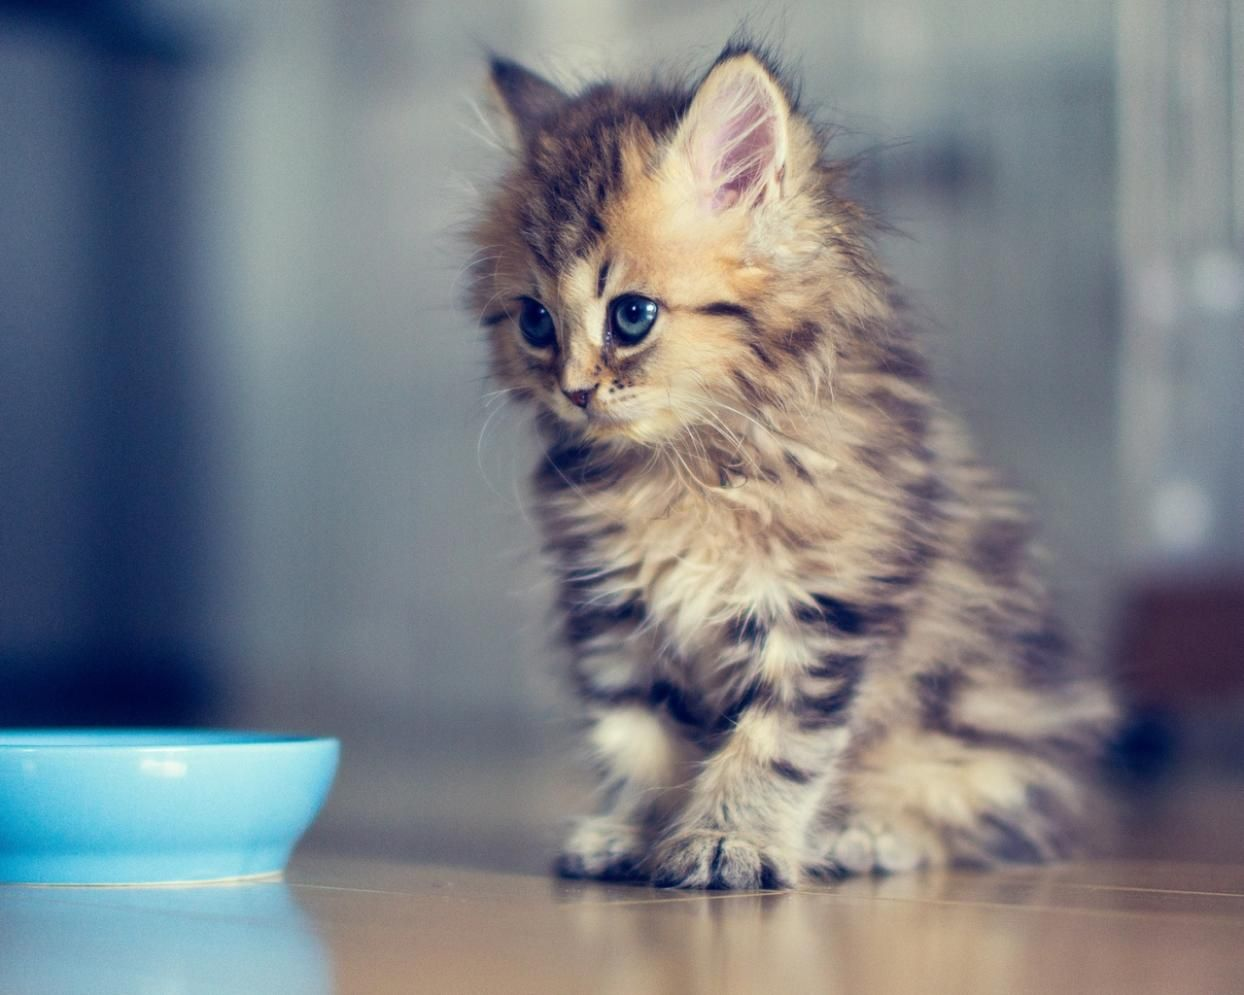 Top 10 cutest kitten GIFs EVER! Yes, we just opened Pandora's box ...